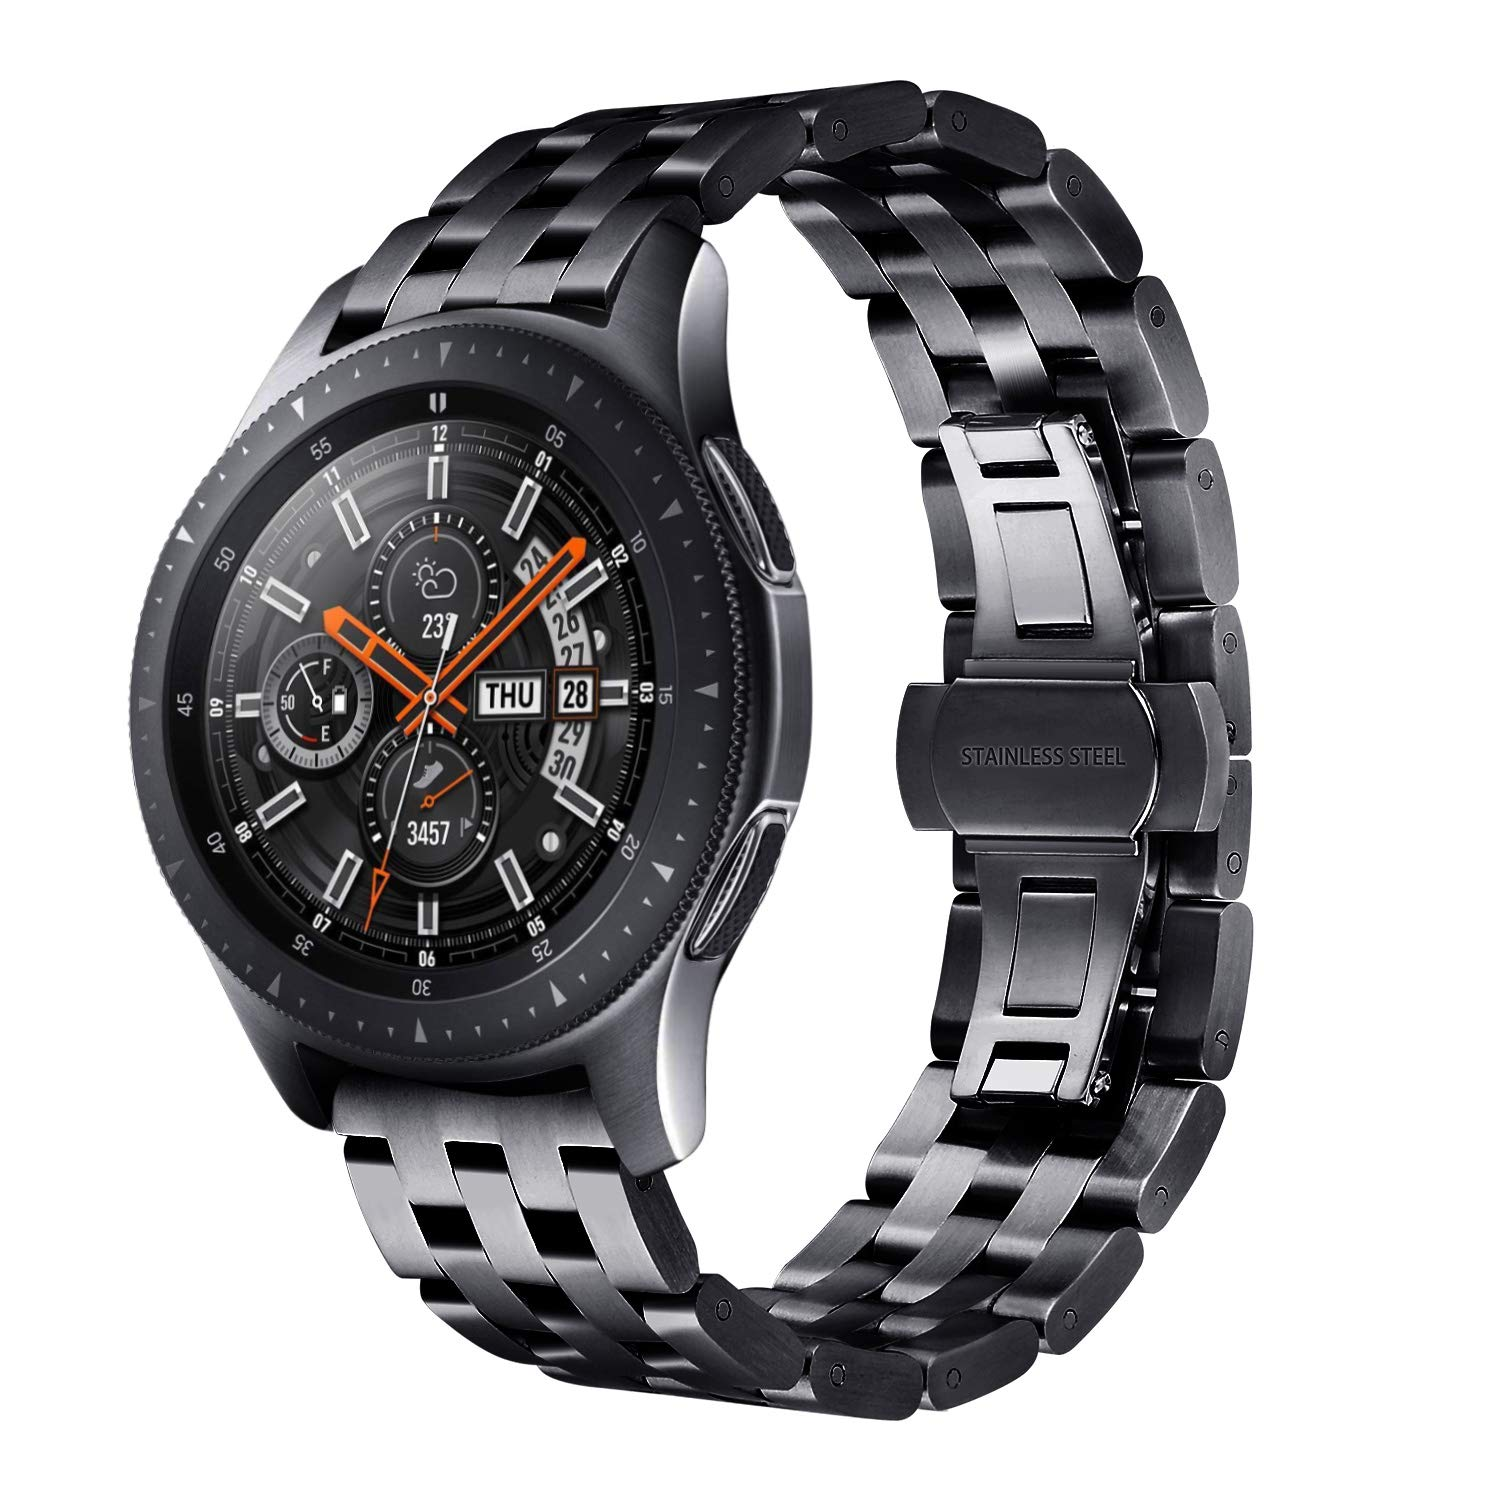 <font><b>20mm</b></font> 22mm Stainless Steel <font><b>Band</b></font> <font><b>For</b></font> Samsung Galaxy Watch 46mm 42mm <font><b>Band</b></font> <font><b>For</b></font> <font><b>Amazfit</b></font> Bip Strap Gear S3 S2 Classic Frontier Strap image